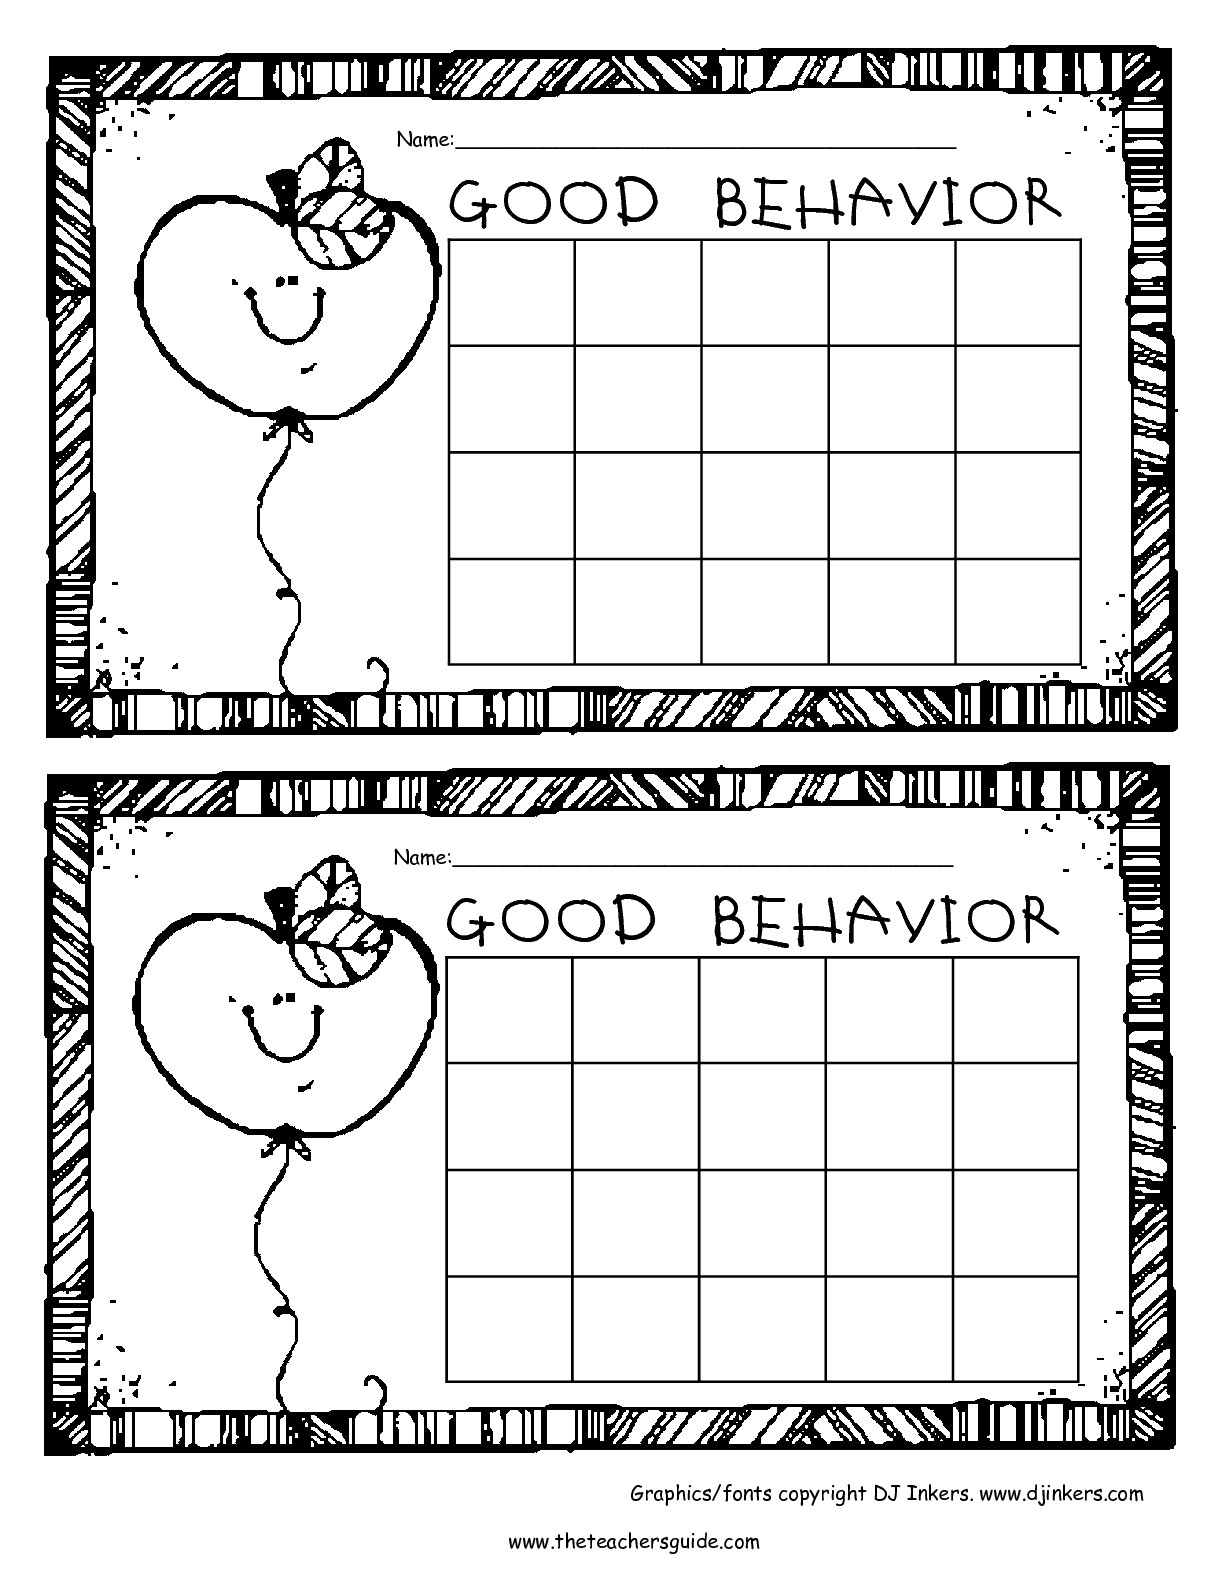 Free Printable Reward And Incentive Charts intended for Free Printable Behavior Chart Templates